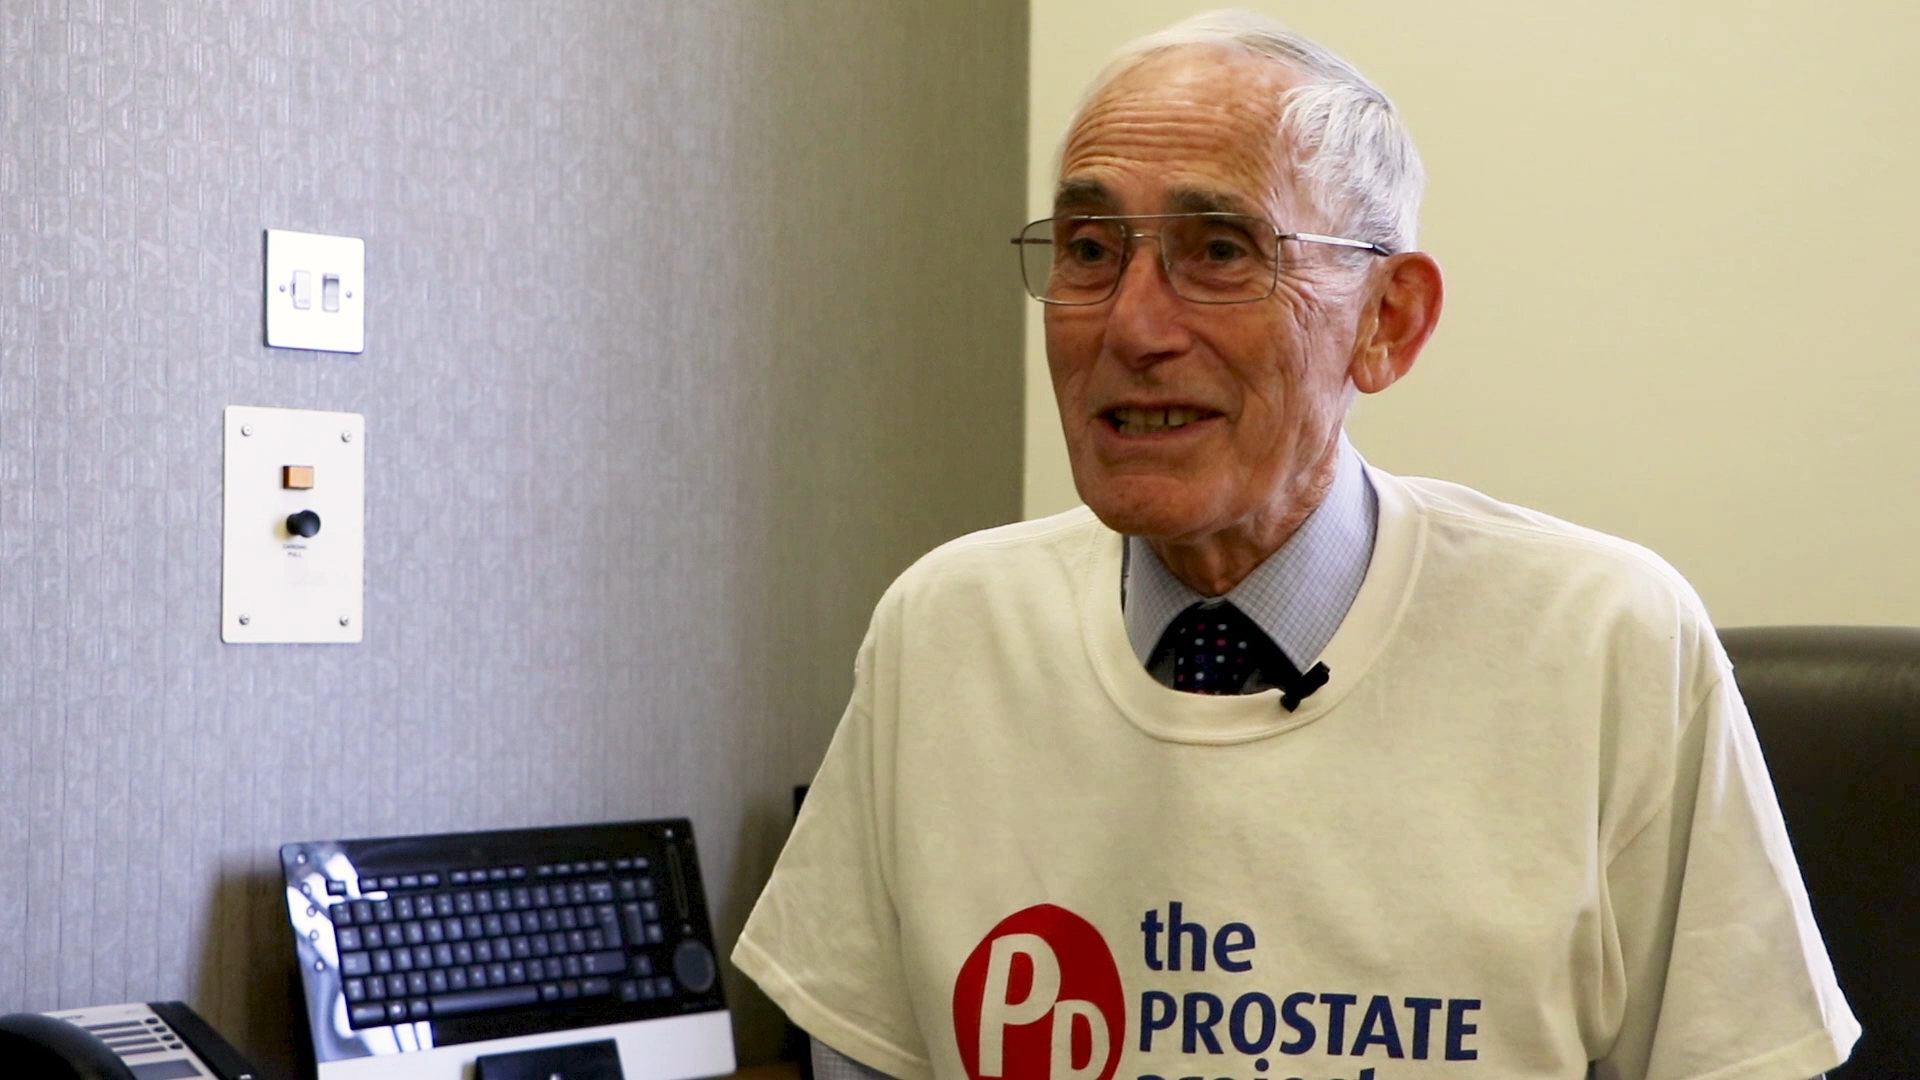 Colin Stokes is the founder of the Prostate Project, the charity behind the Royal Surrey County Hospital's new centre of urology.